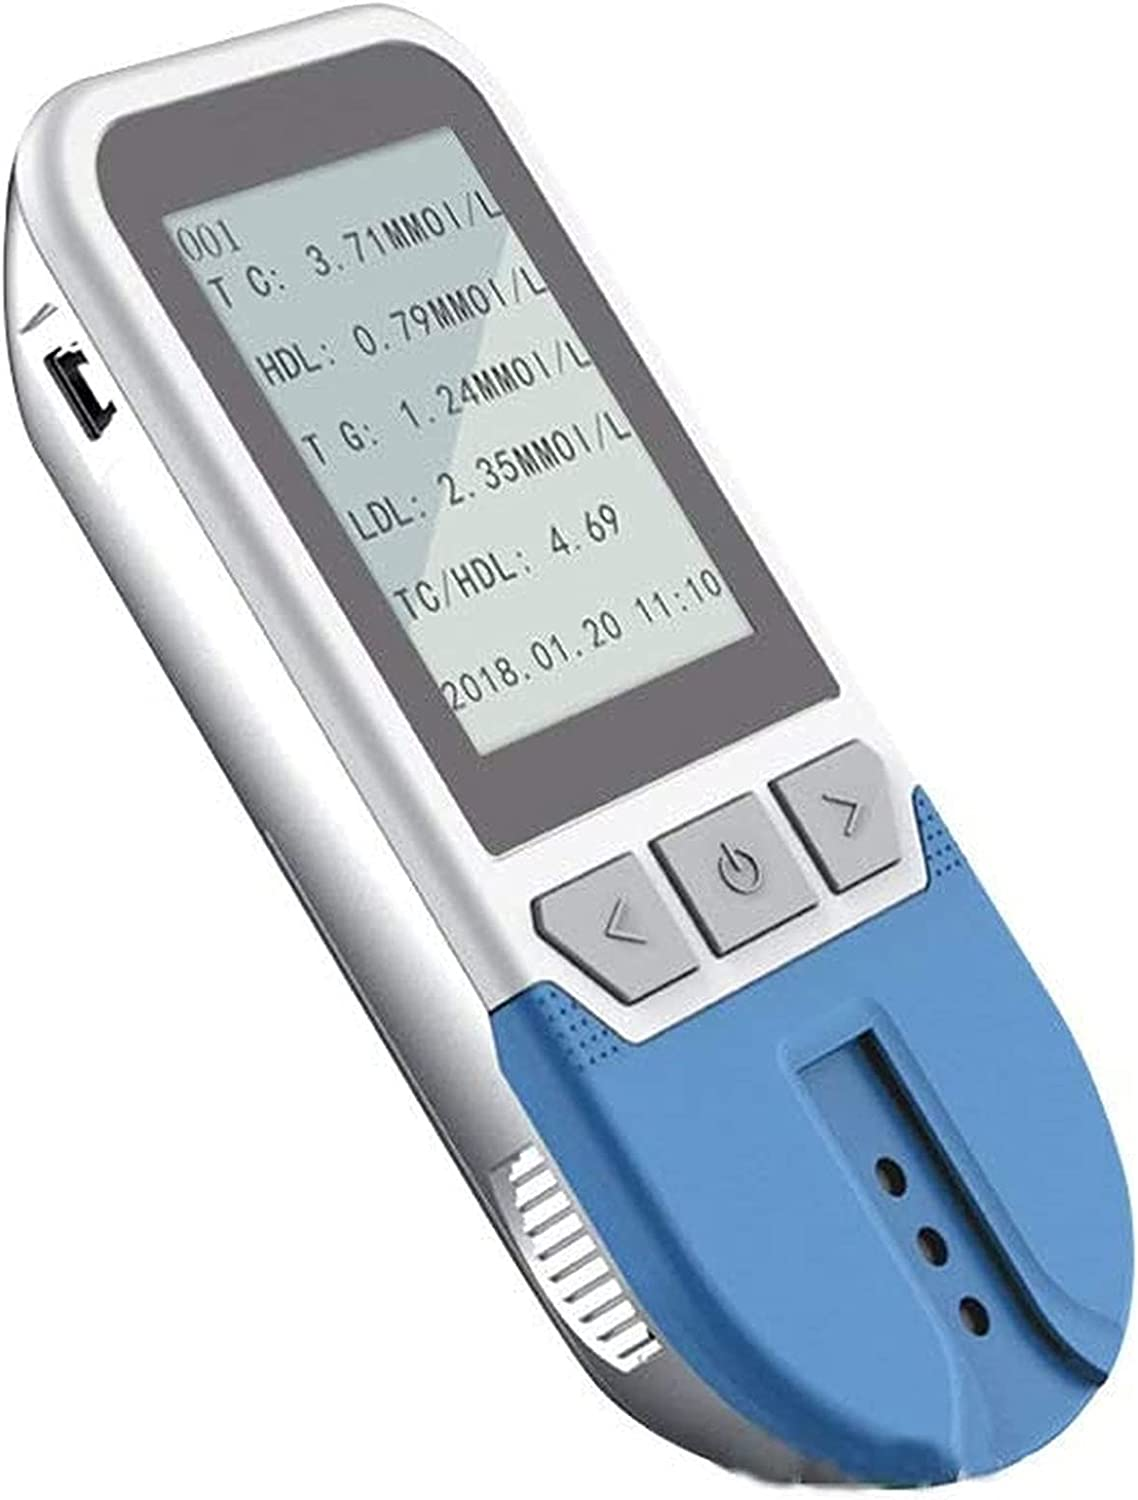 3 in 1 Blood Glucose Meter Home 5-in-1 LDL Triglyce Max 60% OFF Accurate HDL All stores are sold